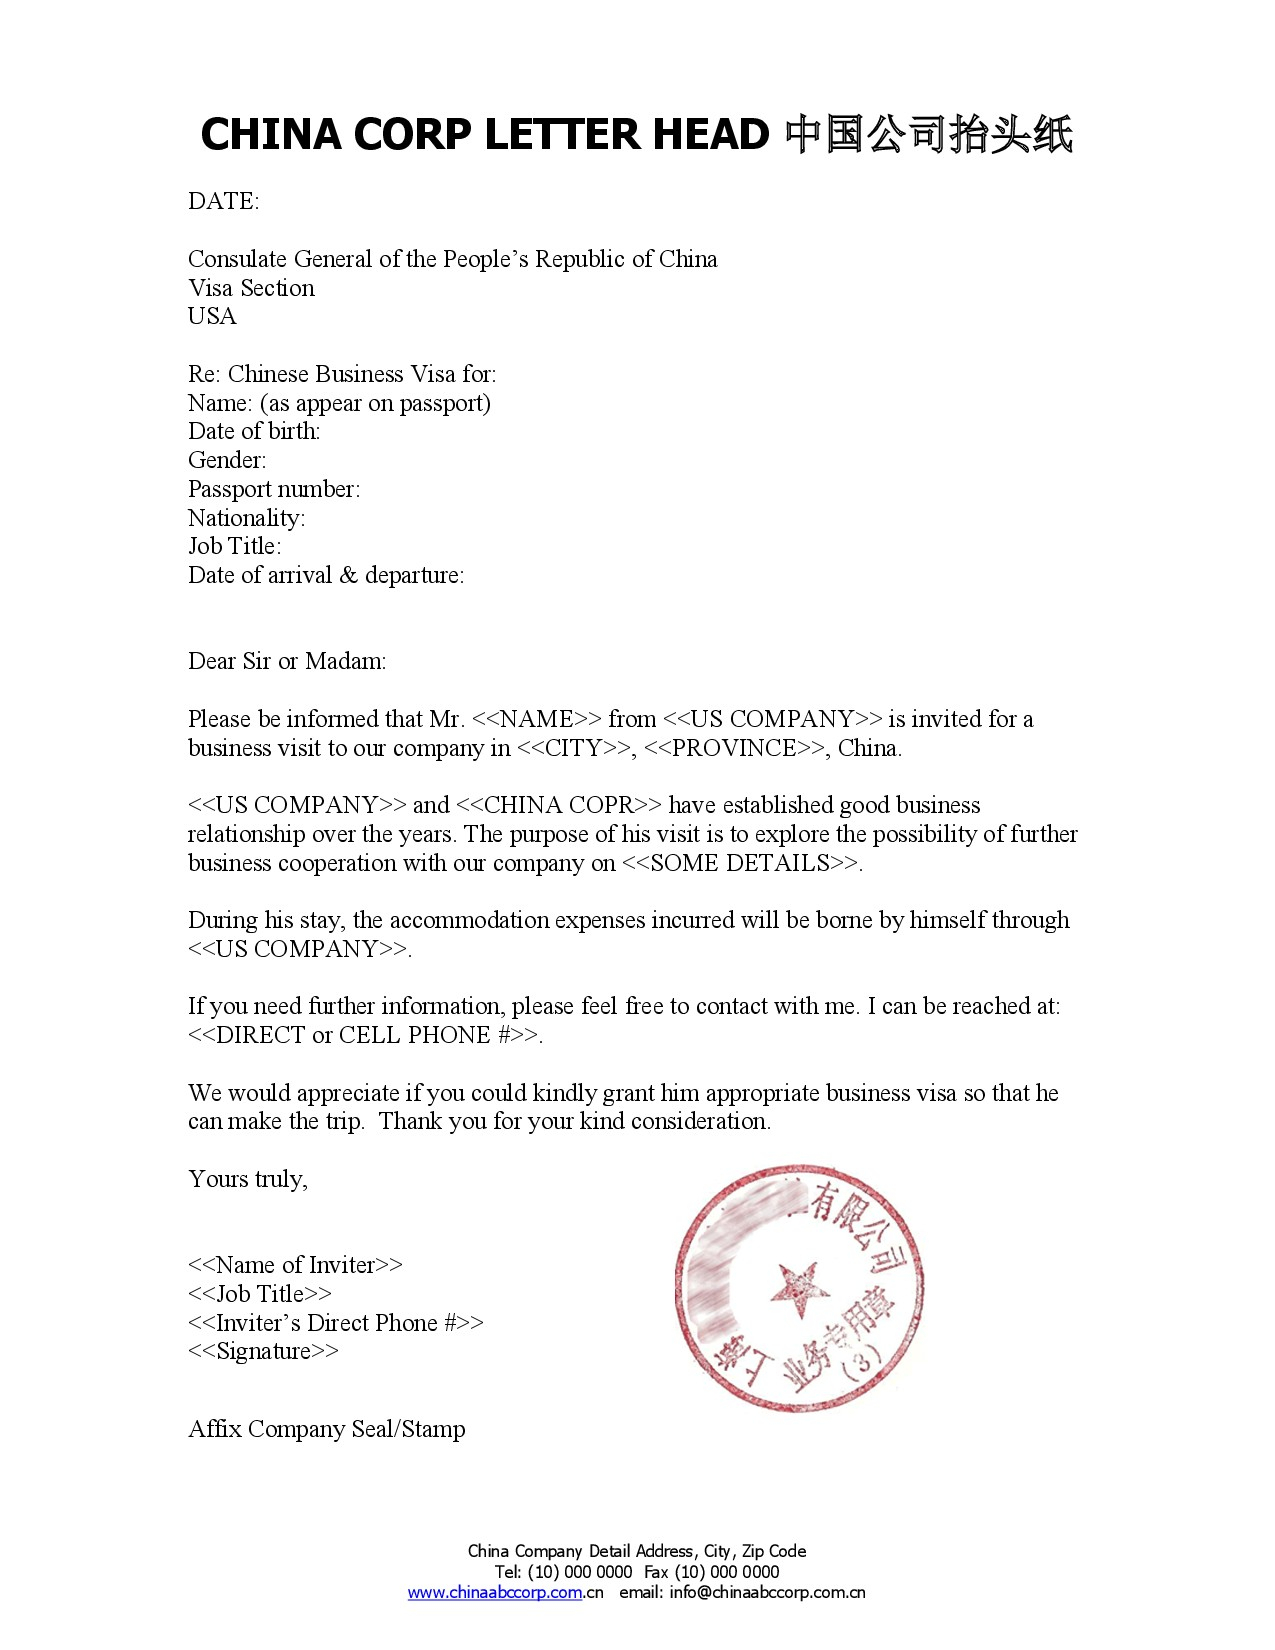 dog letter template, employment letter template, vod letter template, on voe template letter